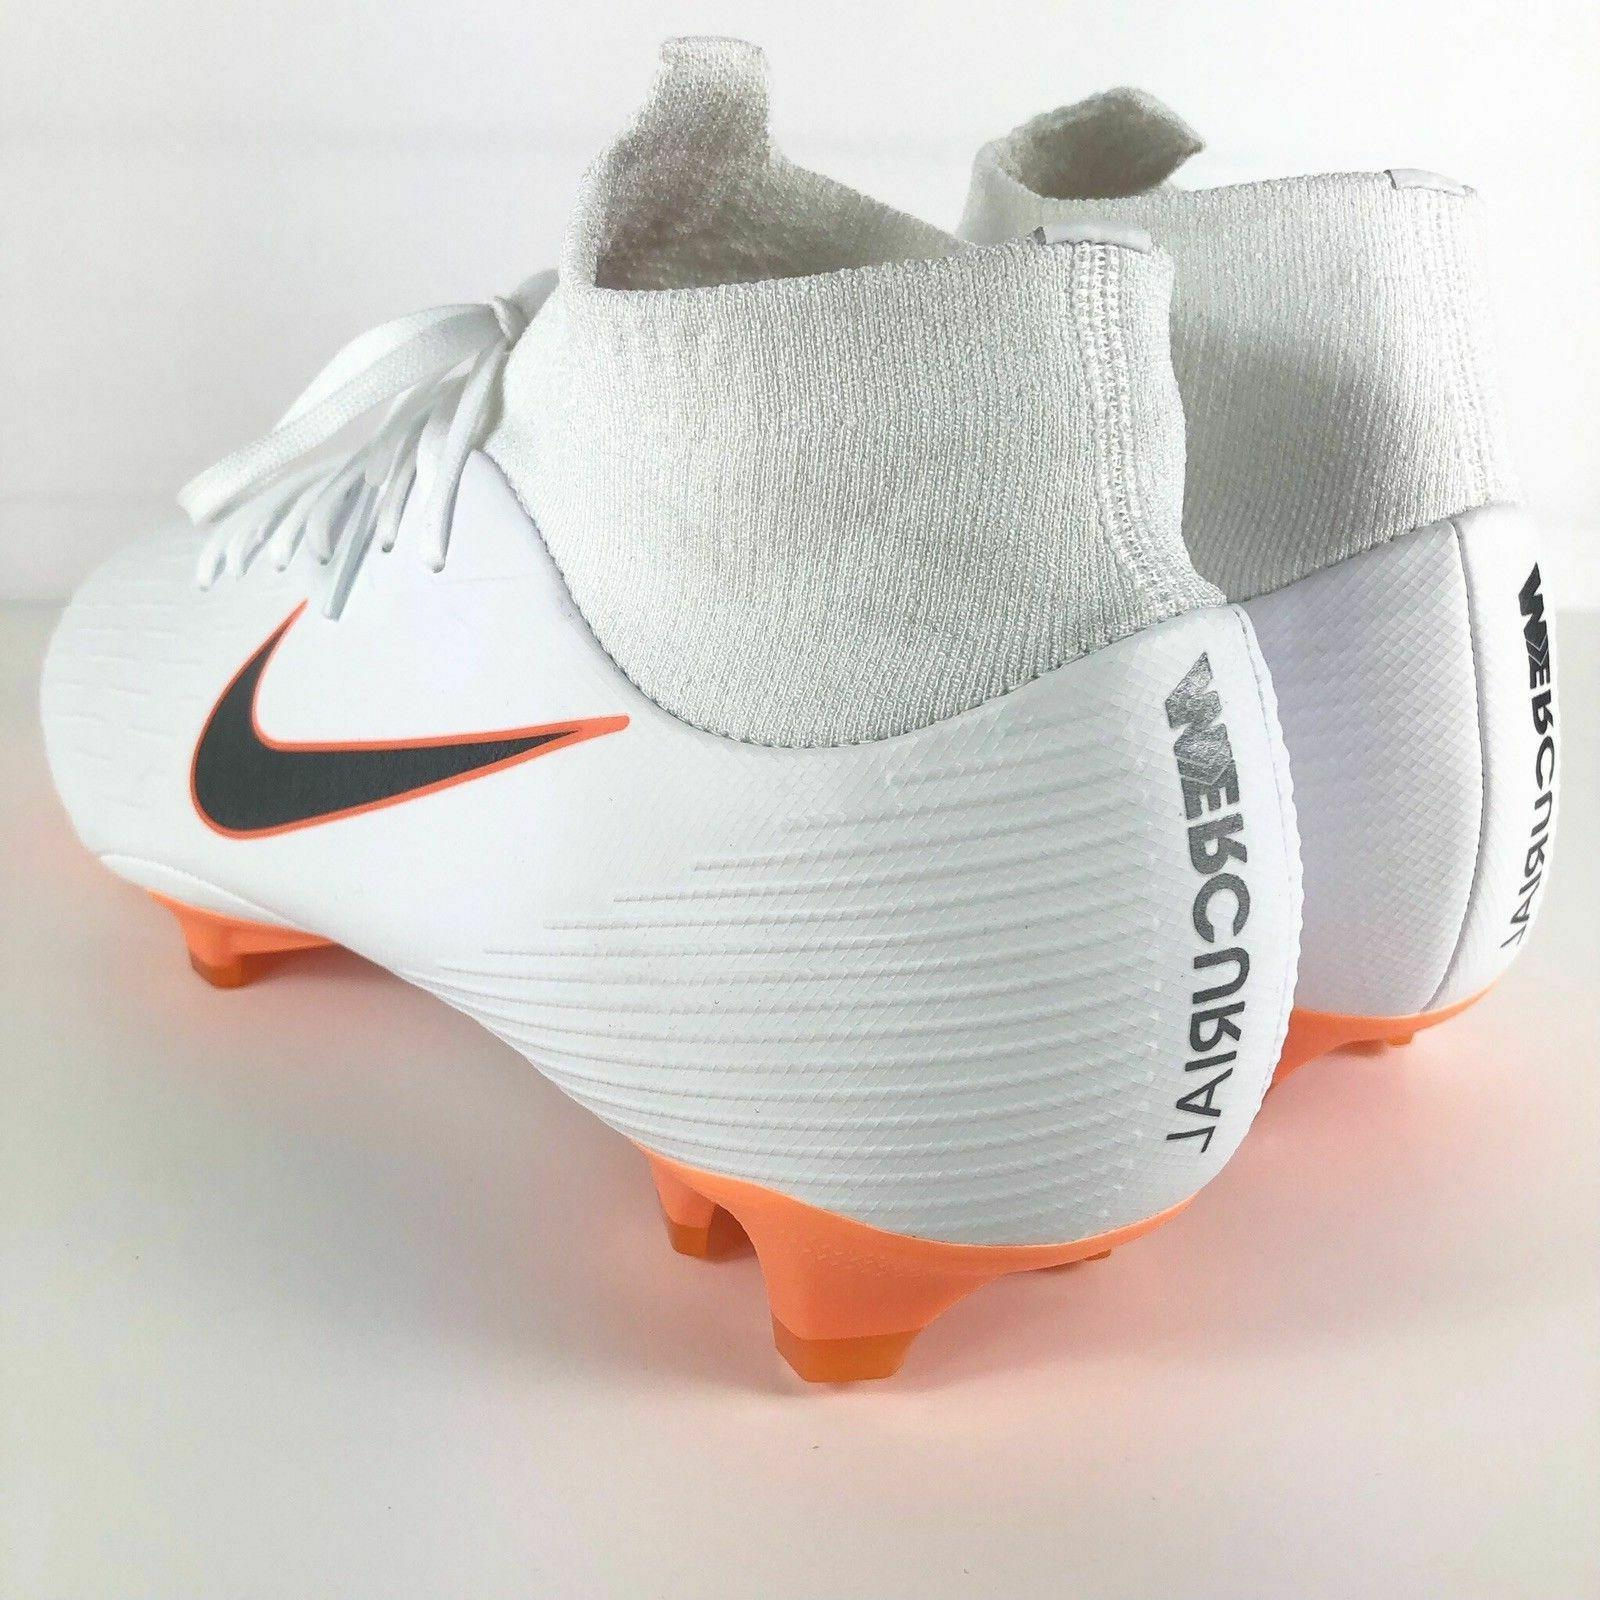 Nike VI Pro ACC Soccer White/Orange 10.5